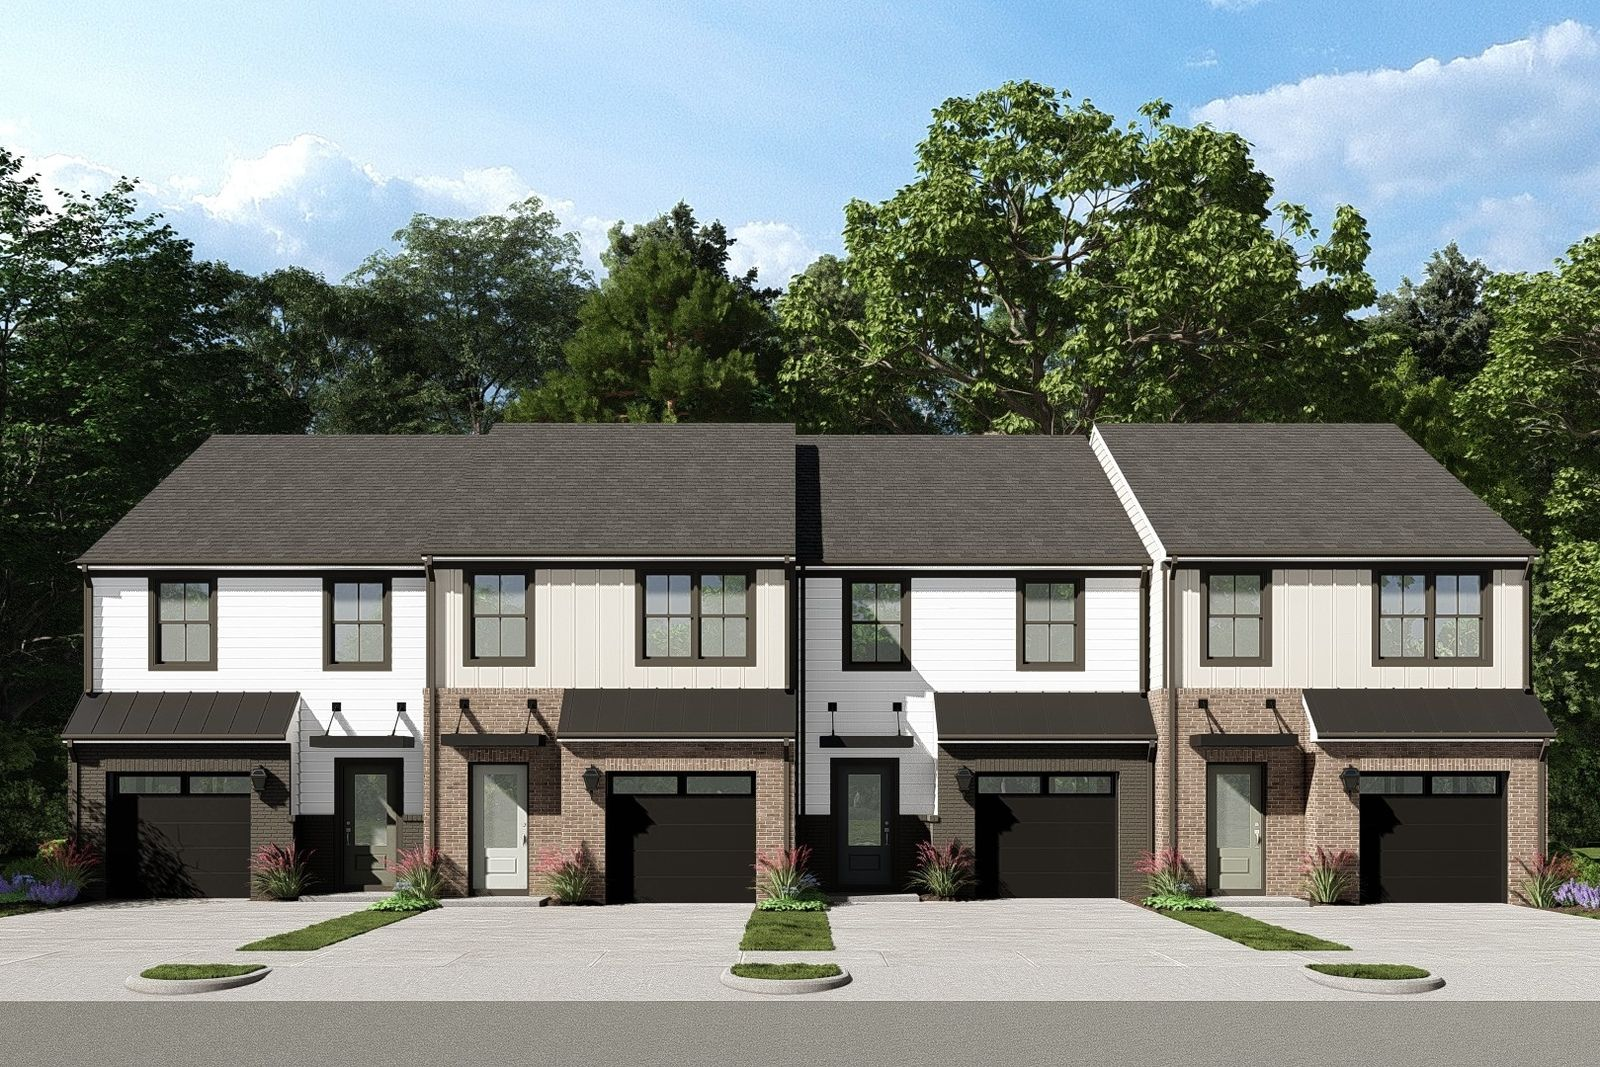 """Own a new, modern, low-maintenance townhome at the best value in the heart of Mauldin.:Expect to enjoy the finer features, finishes, and style in your new home.Join the VIP List to be the first to be """"in the know"""" about Butler Townes. From the mid-$200s."""